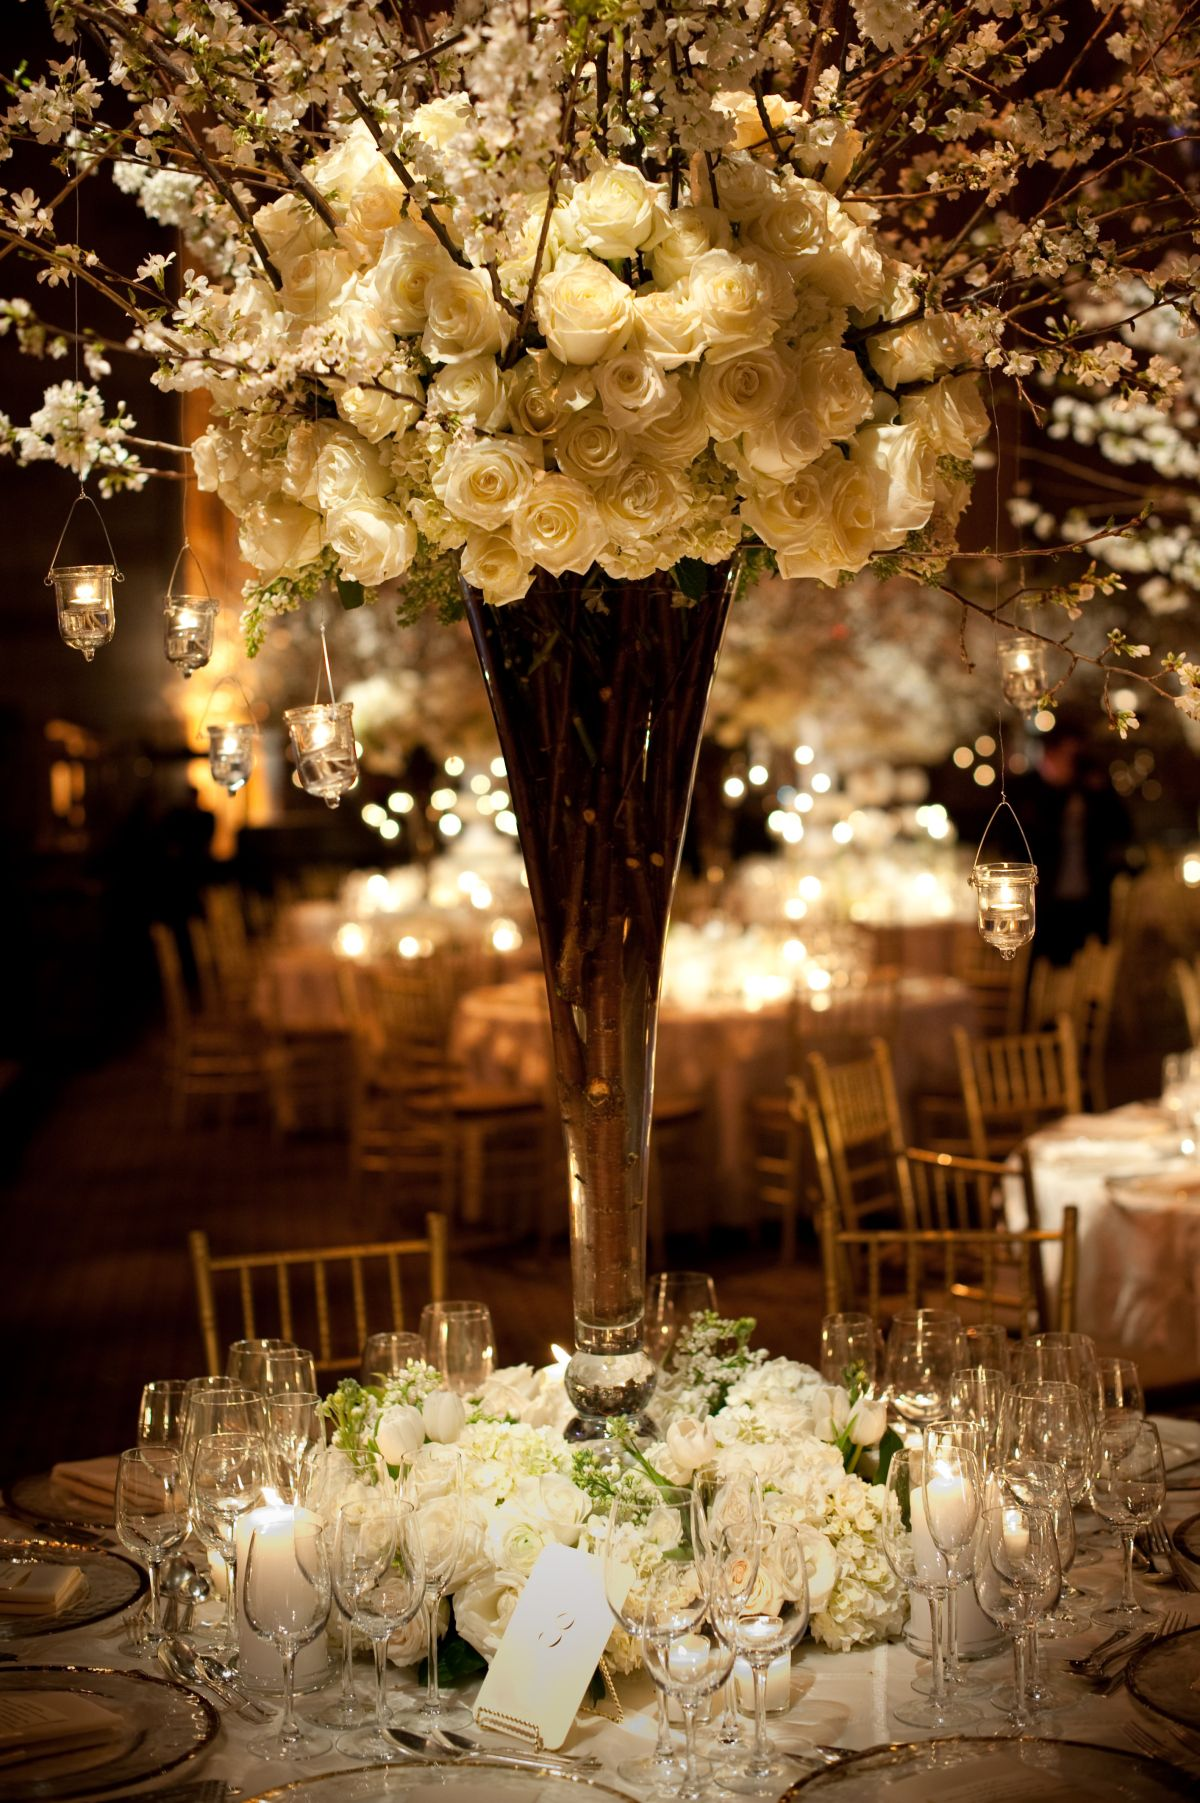 Wedding decorations white  Stunning Winter White Wedding at Cipriani nd Street  Centerpieces